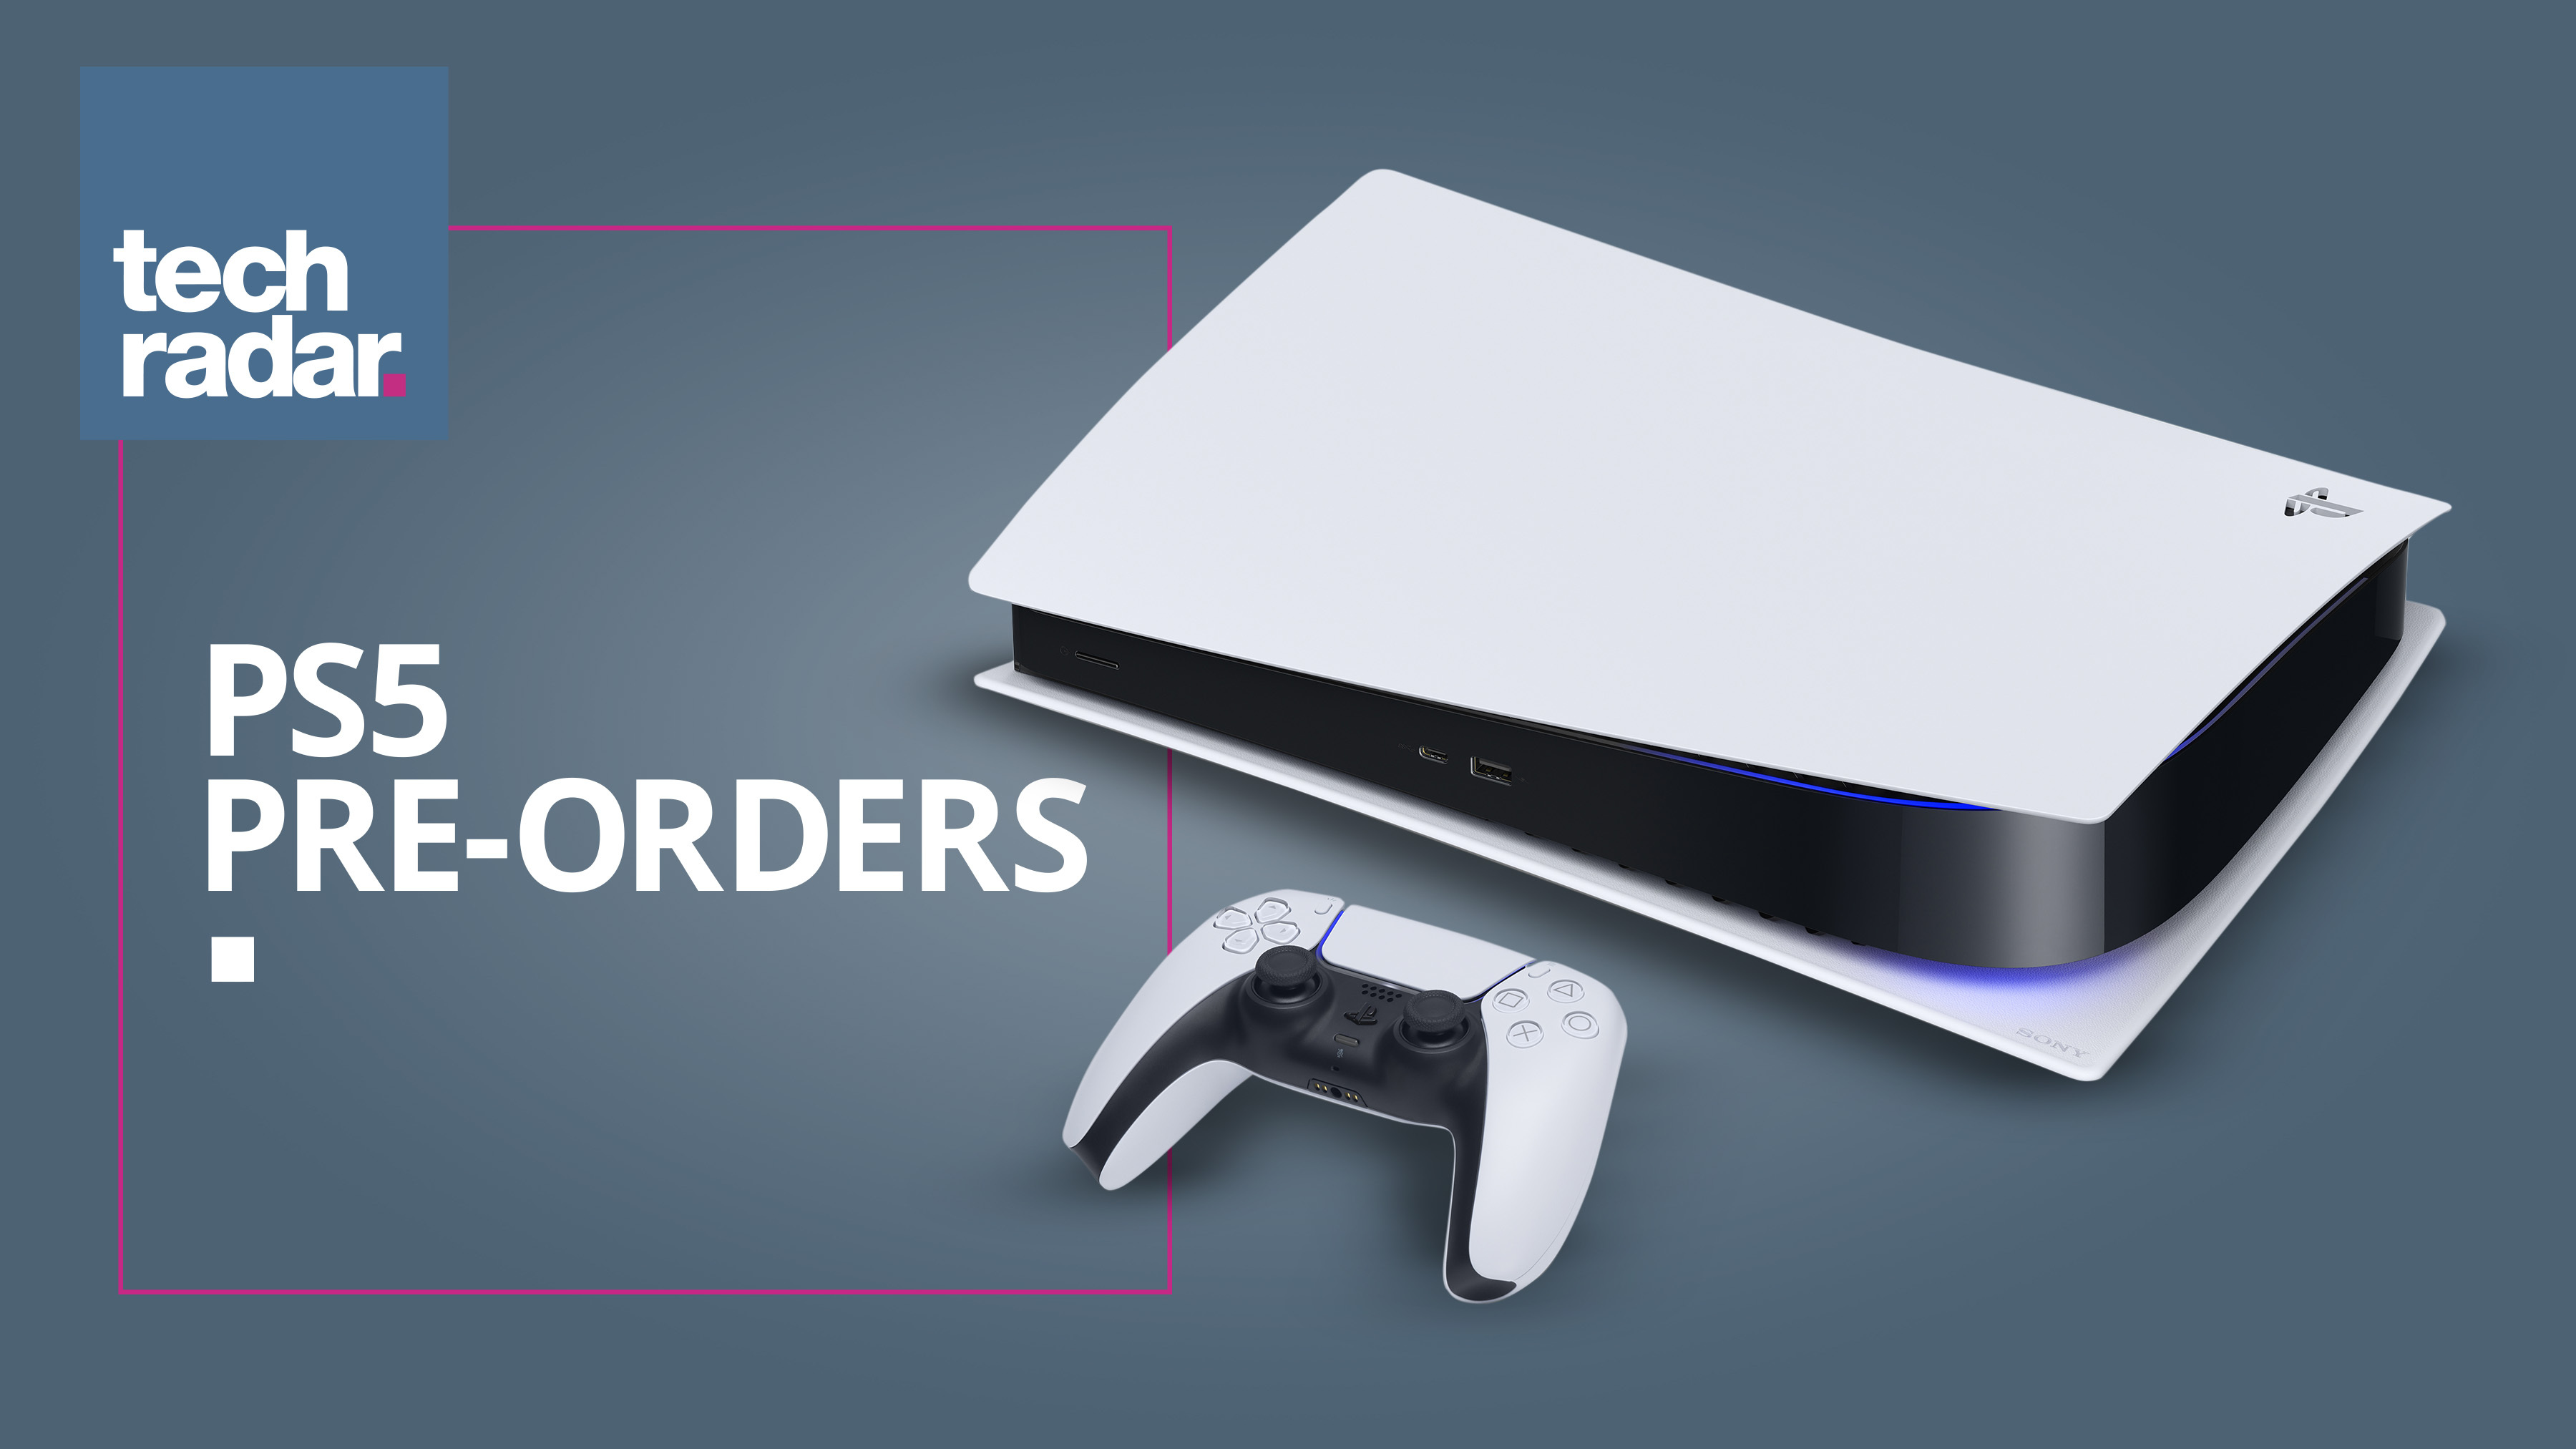 Ps5 Pre Order Deals And Price Where To Buy Playstation 5 Techradar